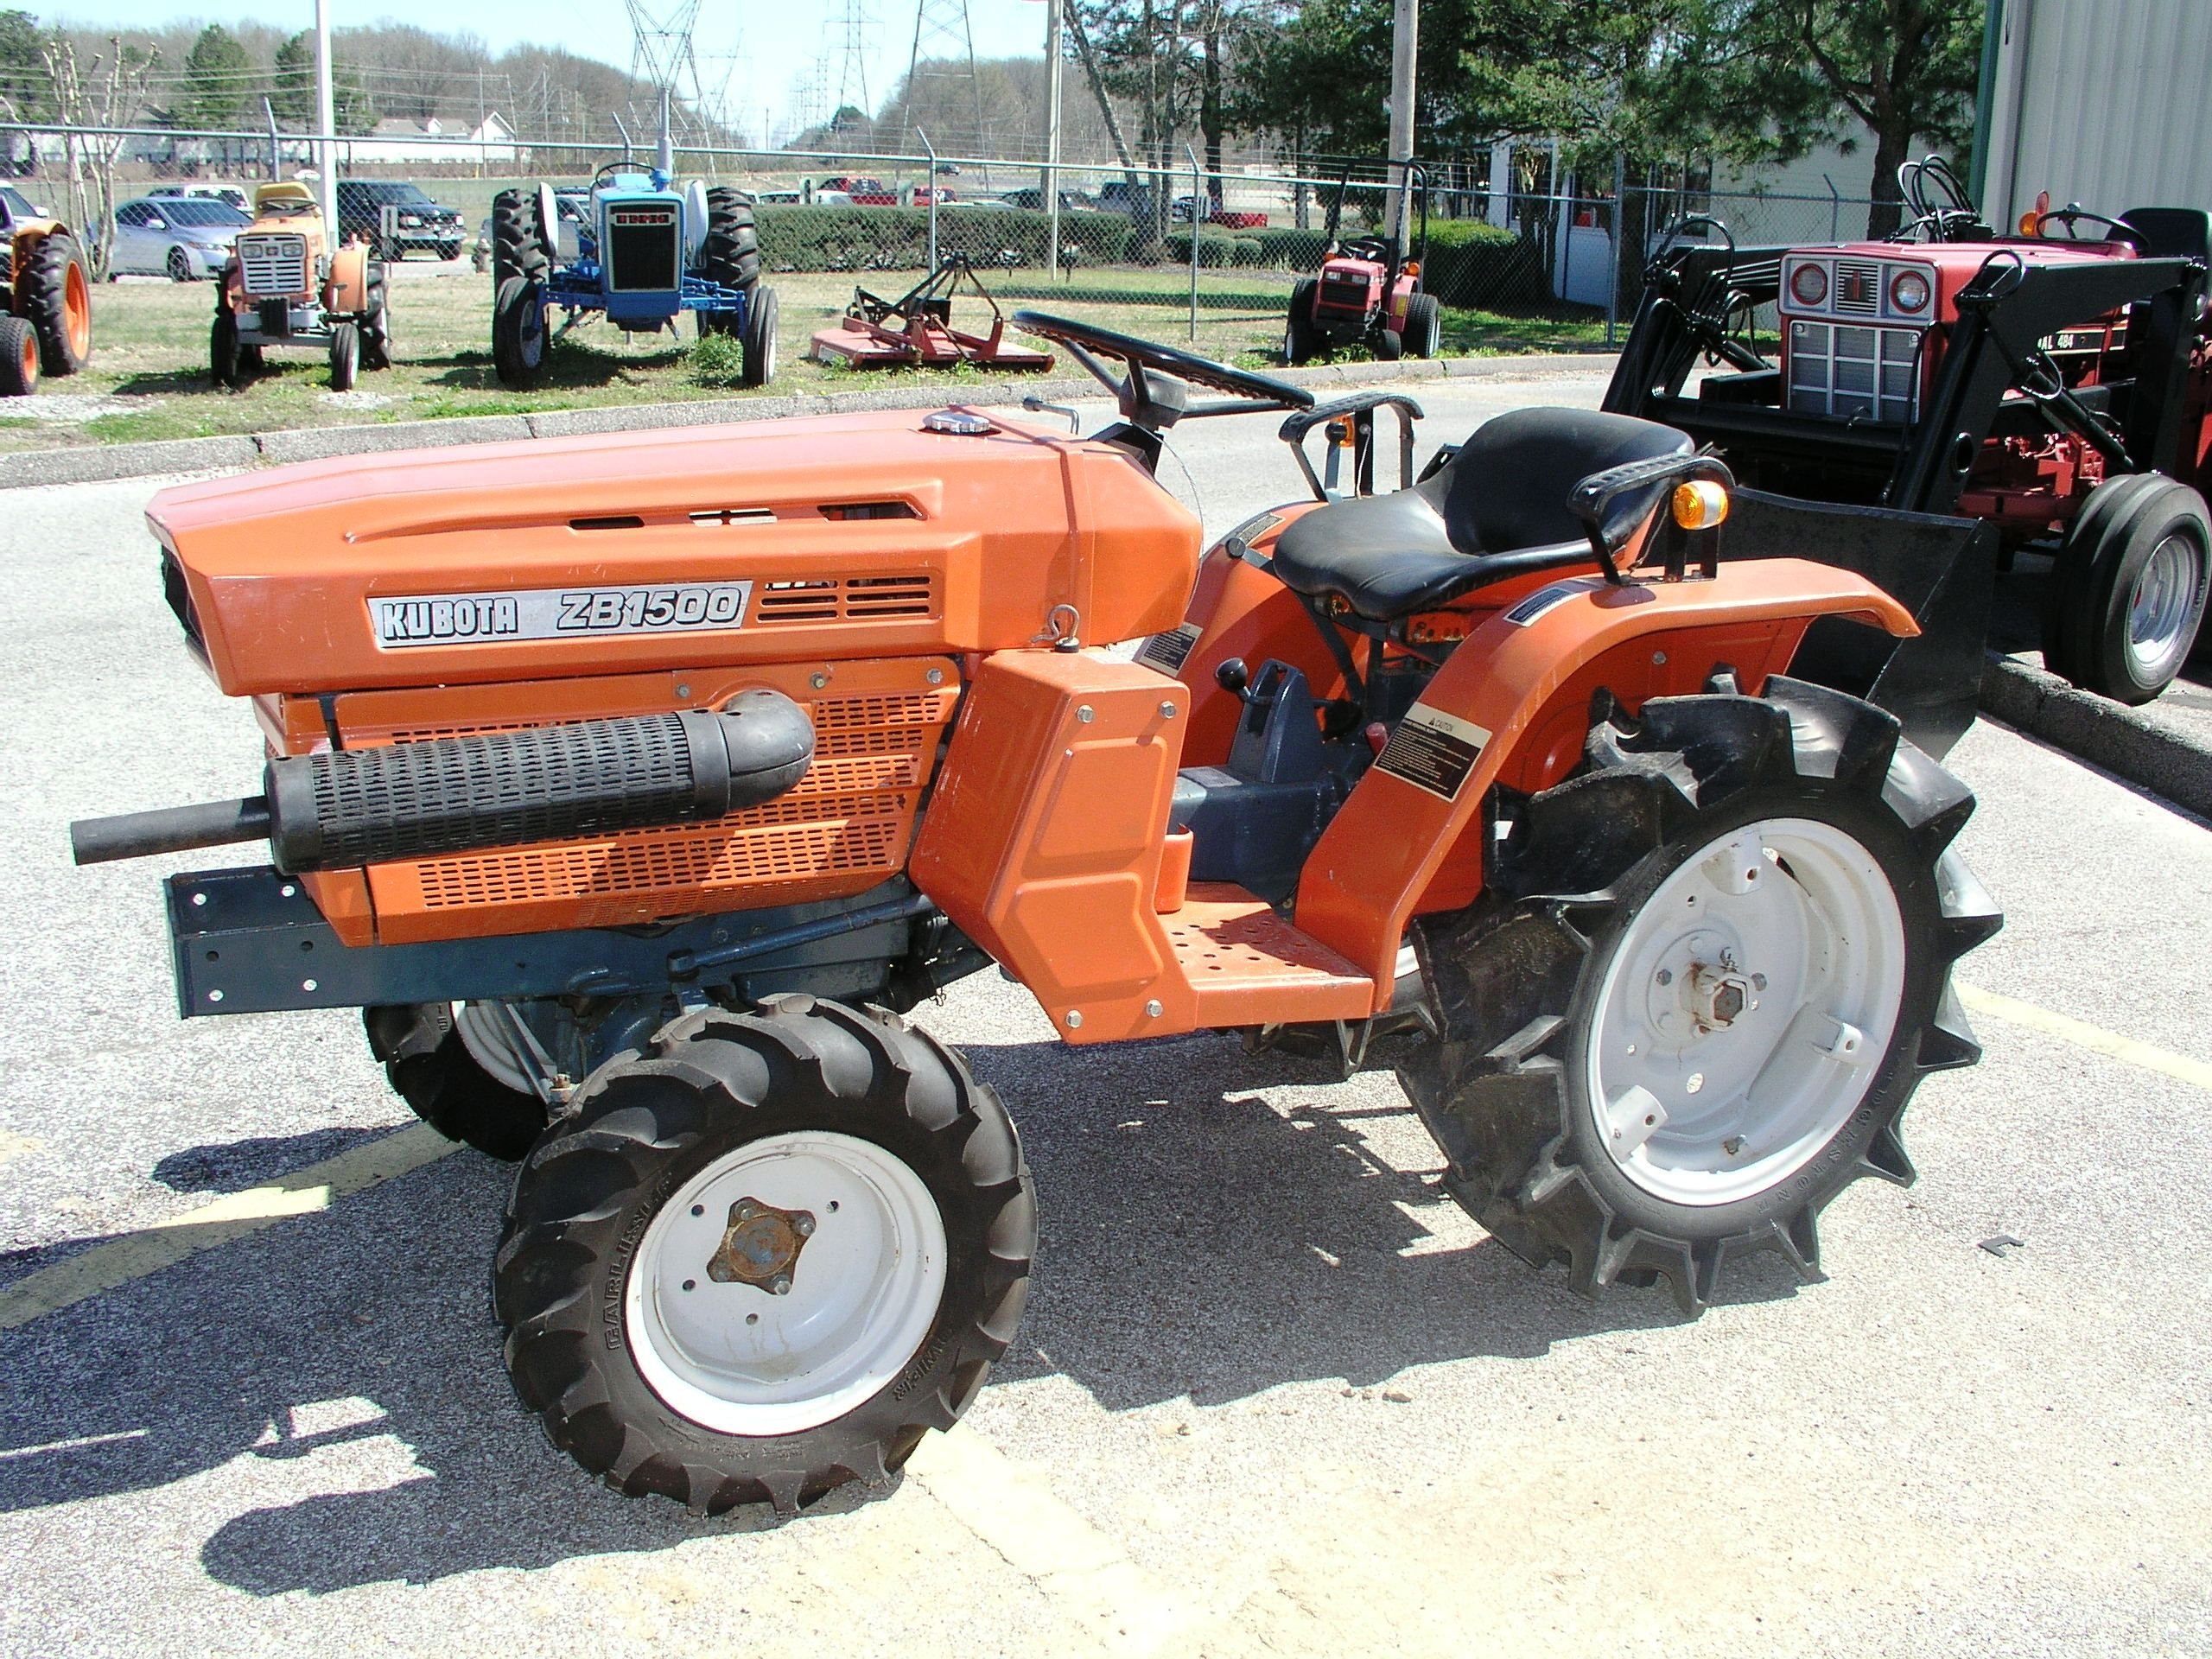 kubota zb1500 tractor mania kubota tractors. Black Bedroom Furniture Sets. Home Design Ideas